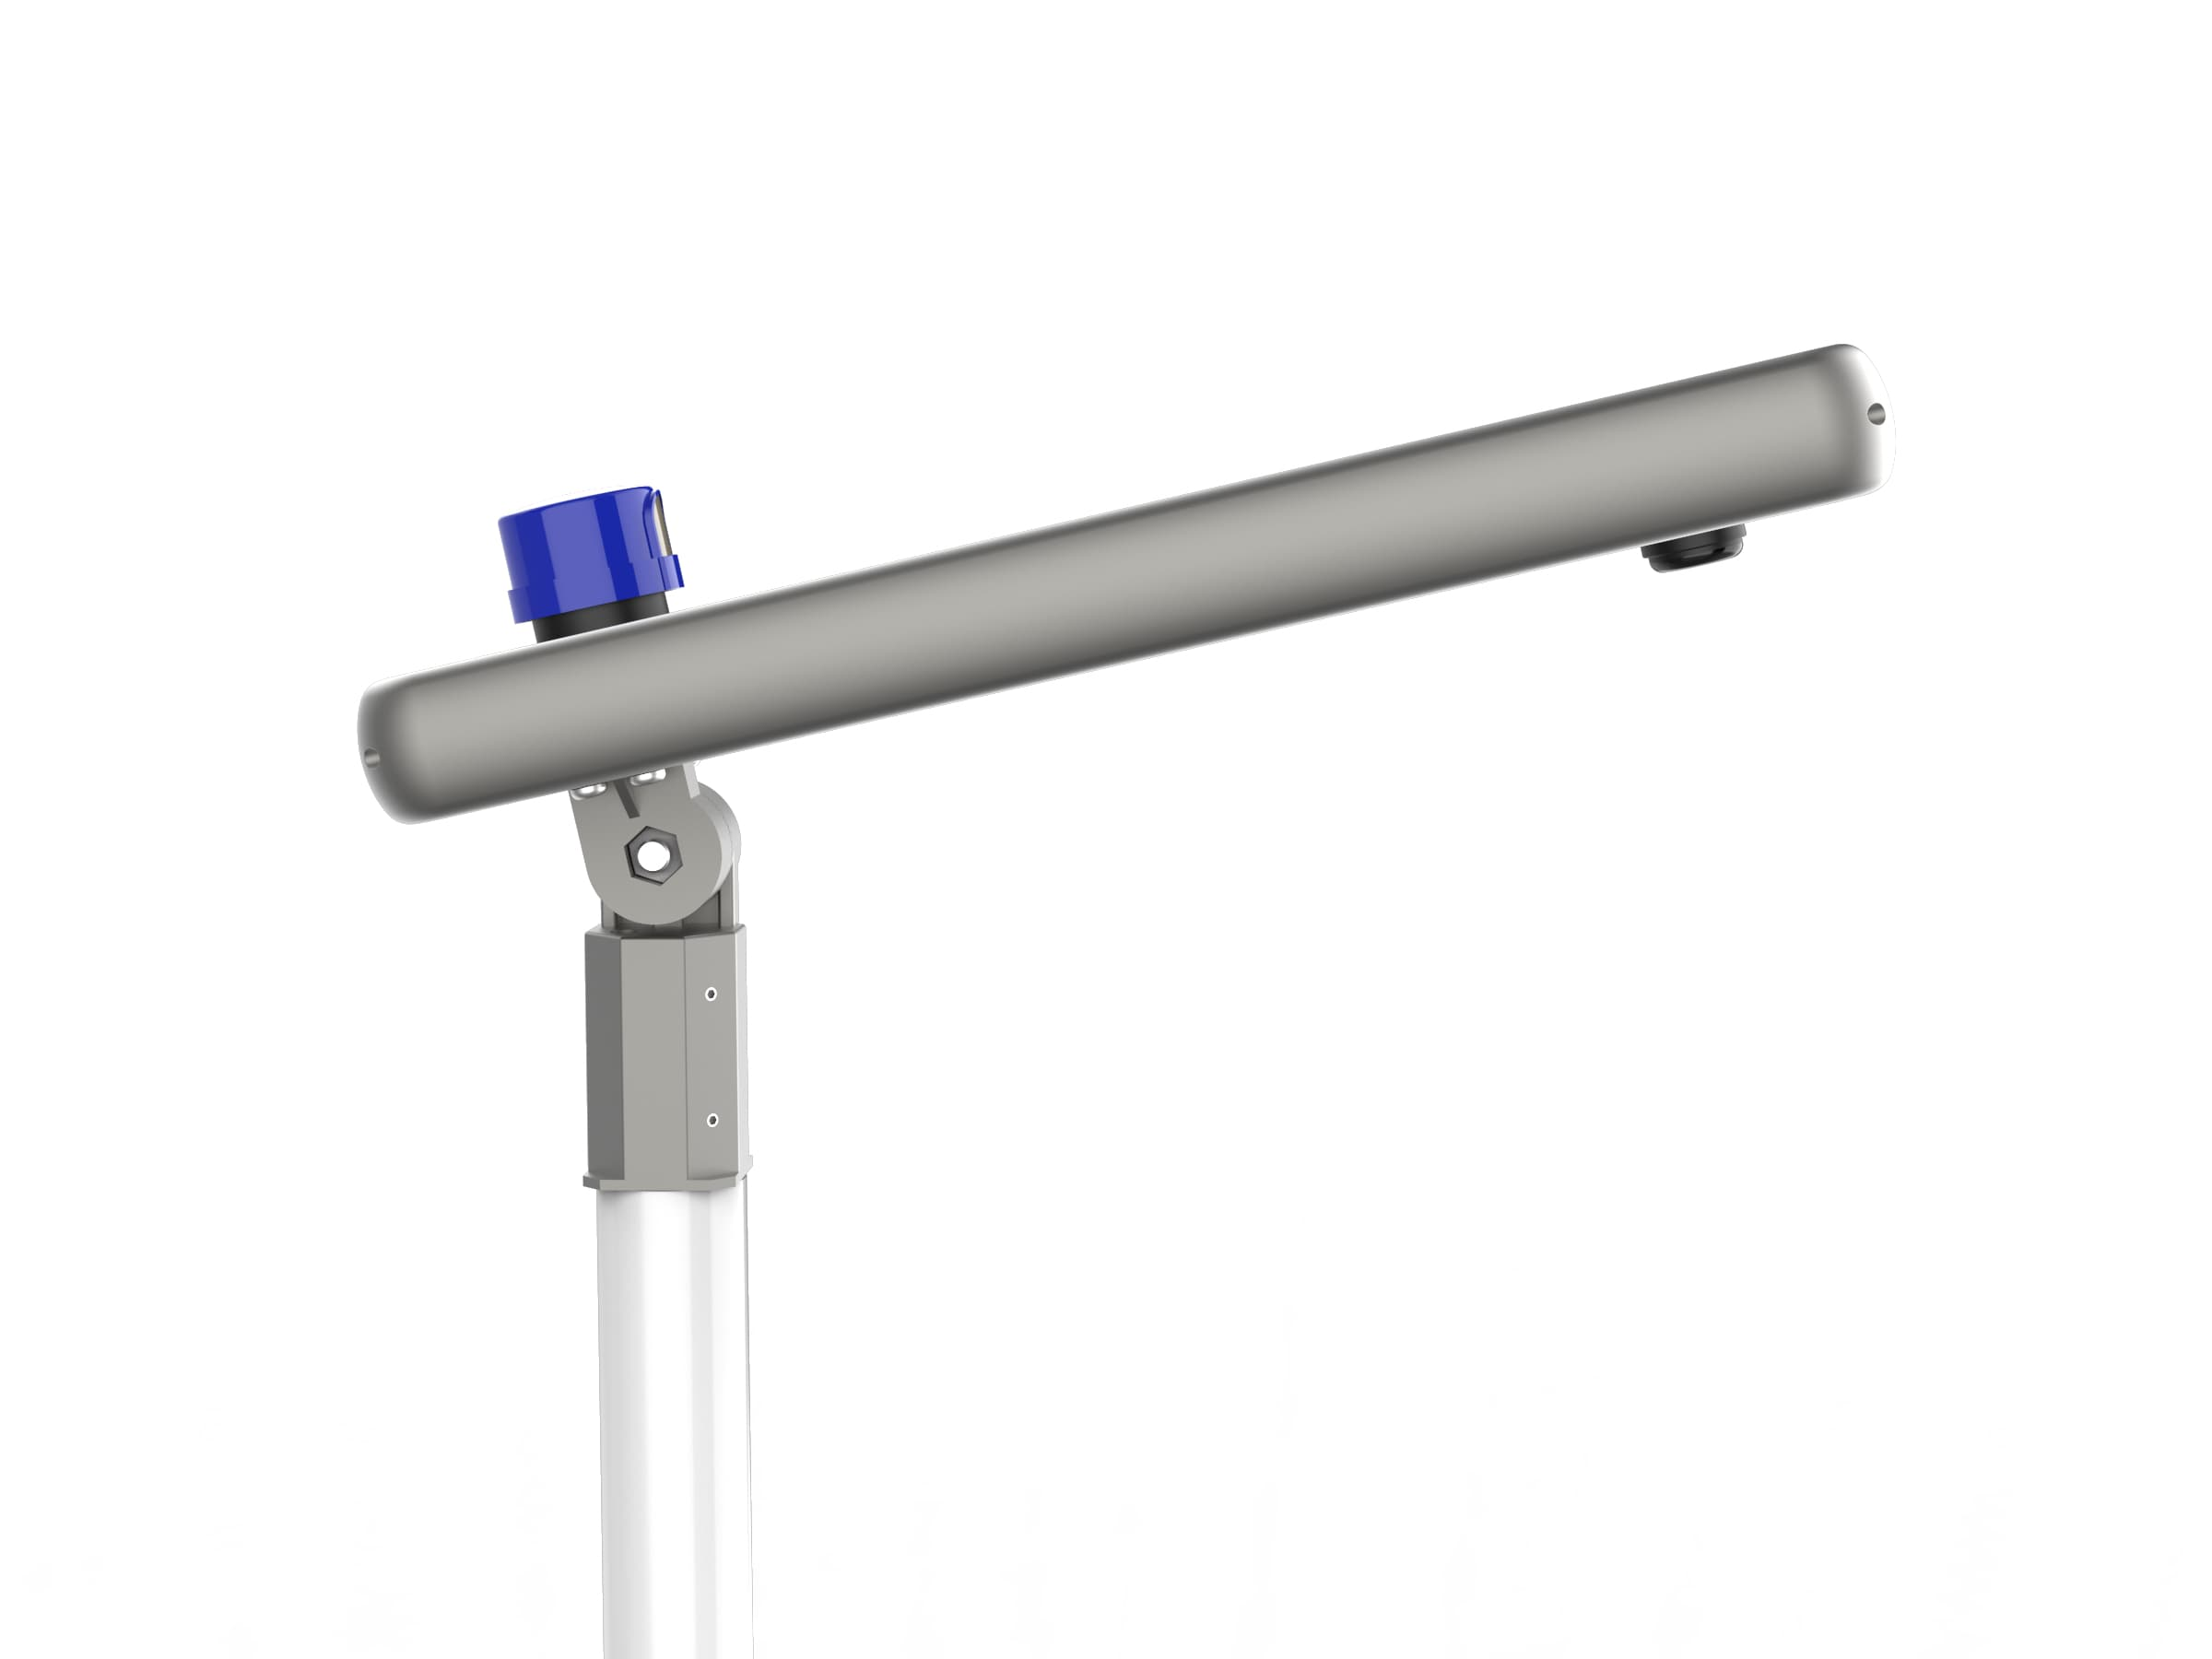 Lightgogo1 smart LED street lights, are optimized for customers requiring a motion detectable, programmable, smart dimming, and super high-efficiency solution